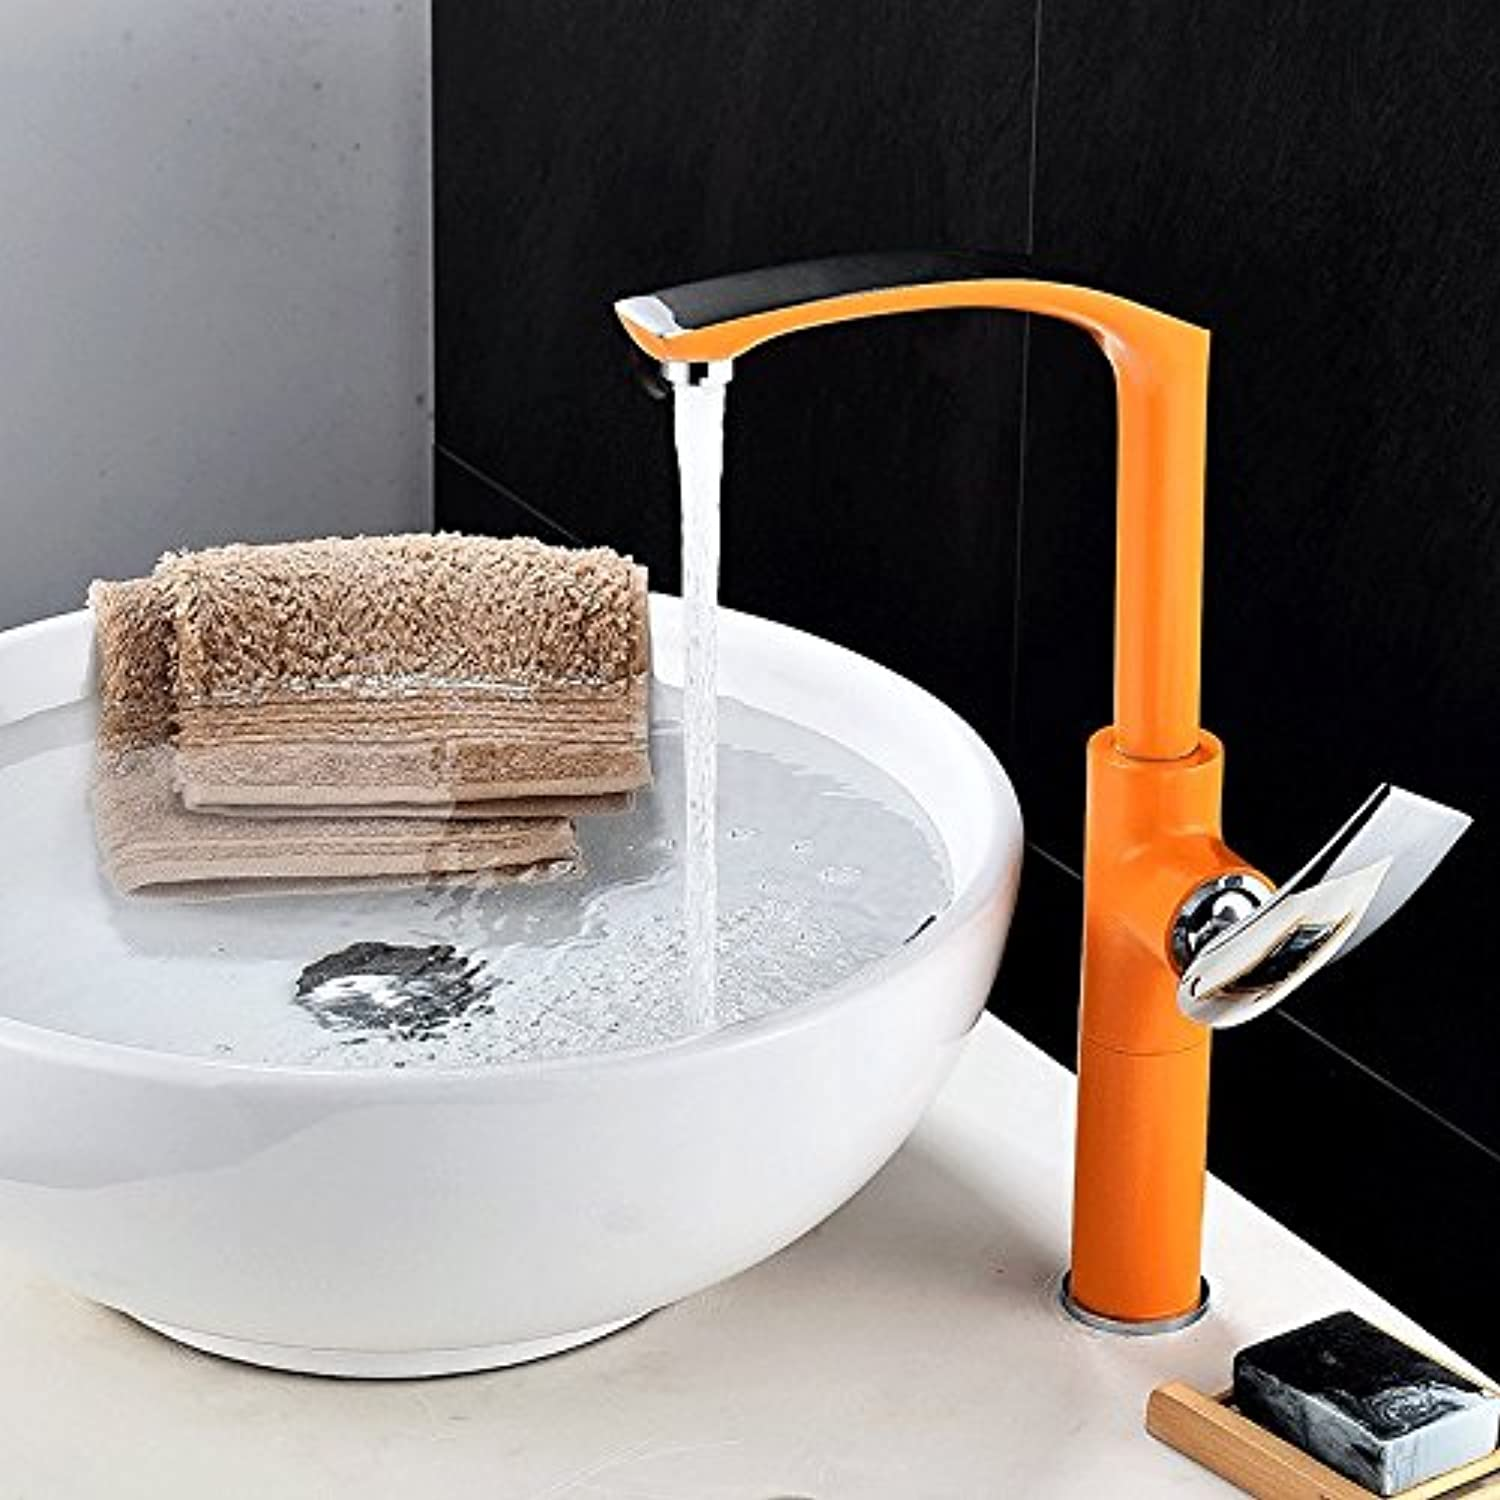 Lpophy Bathroom Sink Mixer Taps Faucet Bath Waterfall Cold and Hot Water Tap for Washroom Bathroom and Kitchen Hot and Cold Paint orange